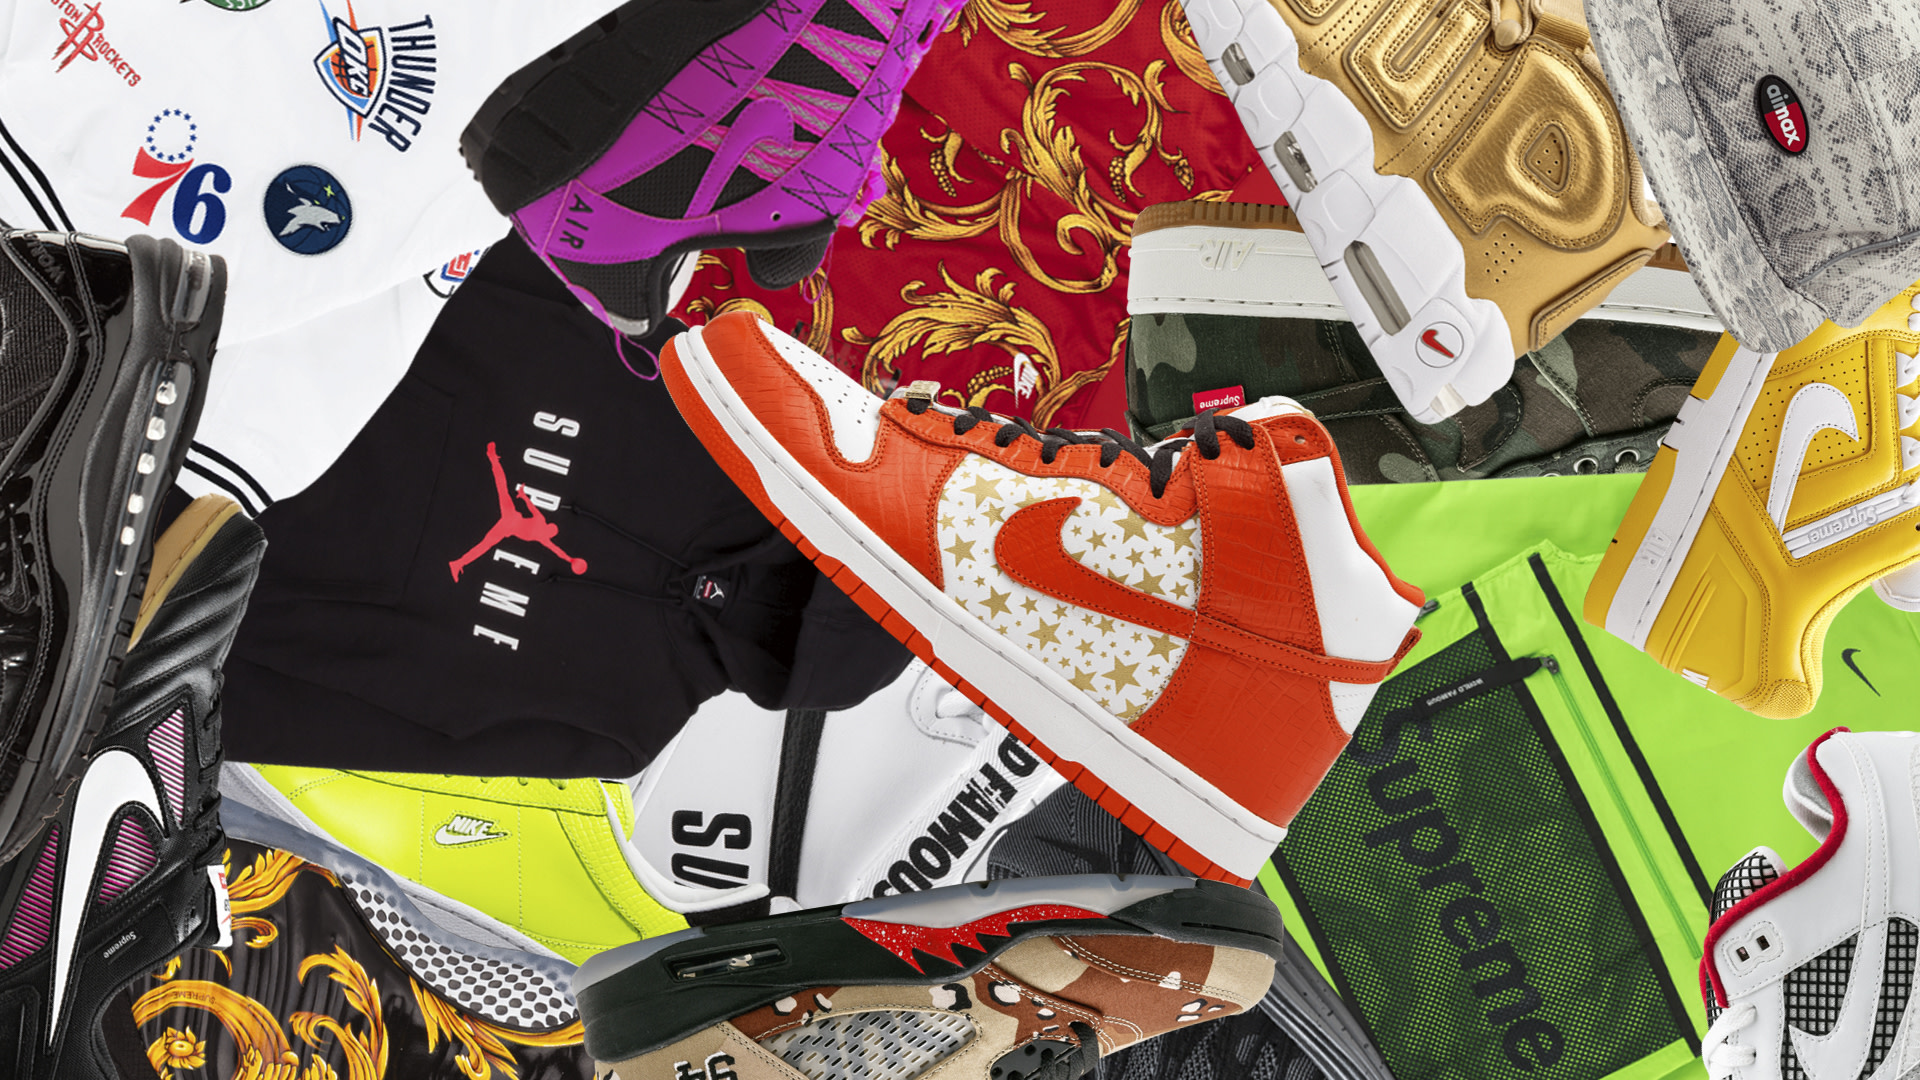 Has the Supreme x Nike Hype Died Down?